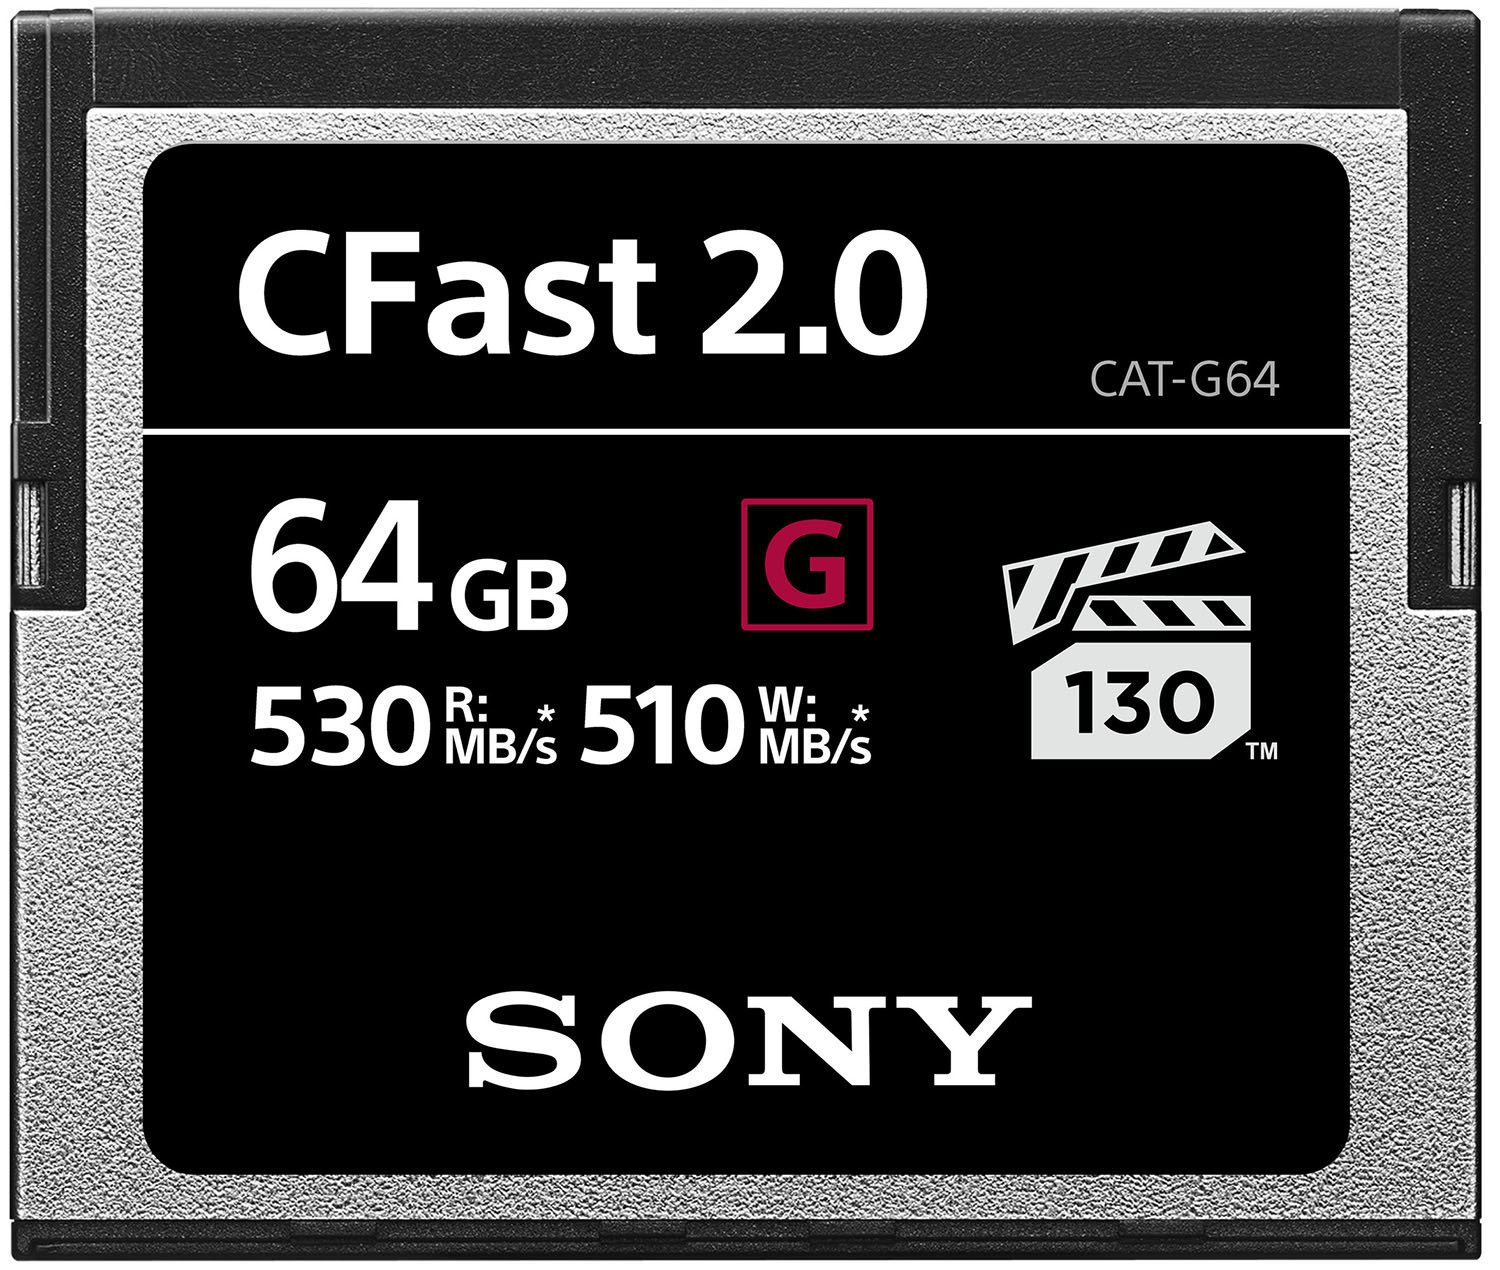 Sony CAT-G64 64GB High Performance CFast G Series 2.0 Memory Card by Sony